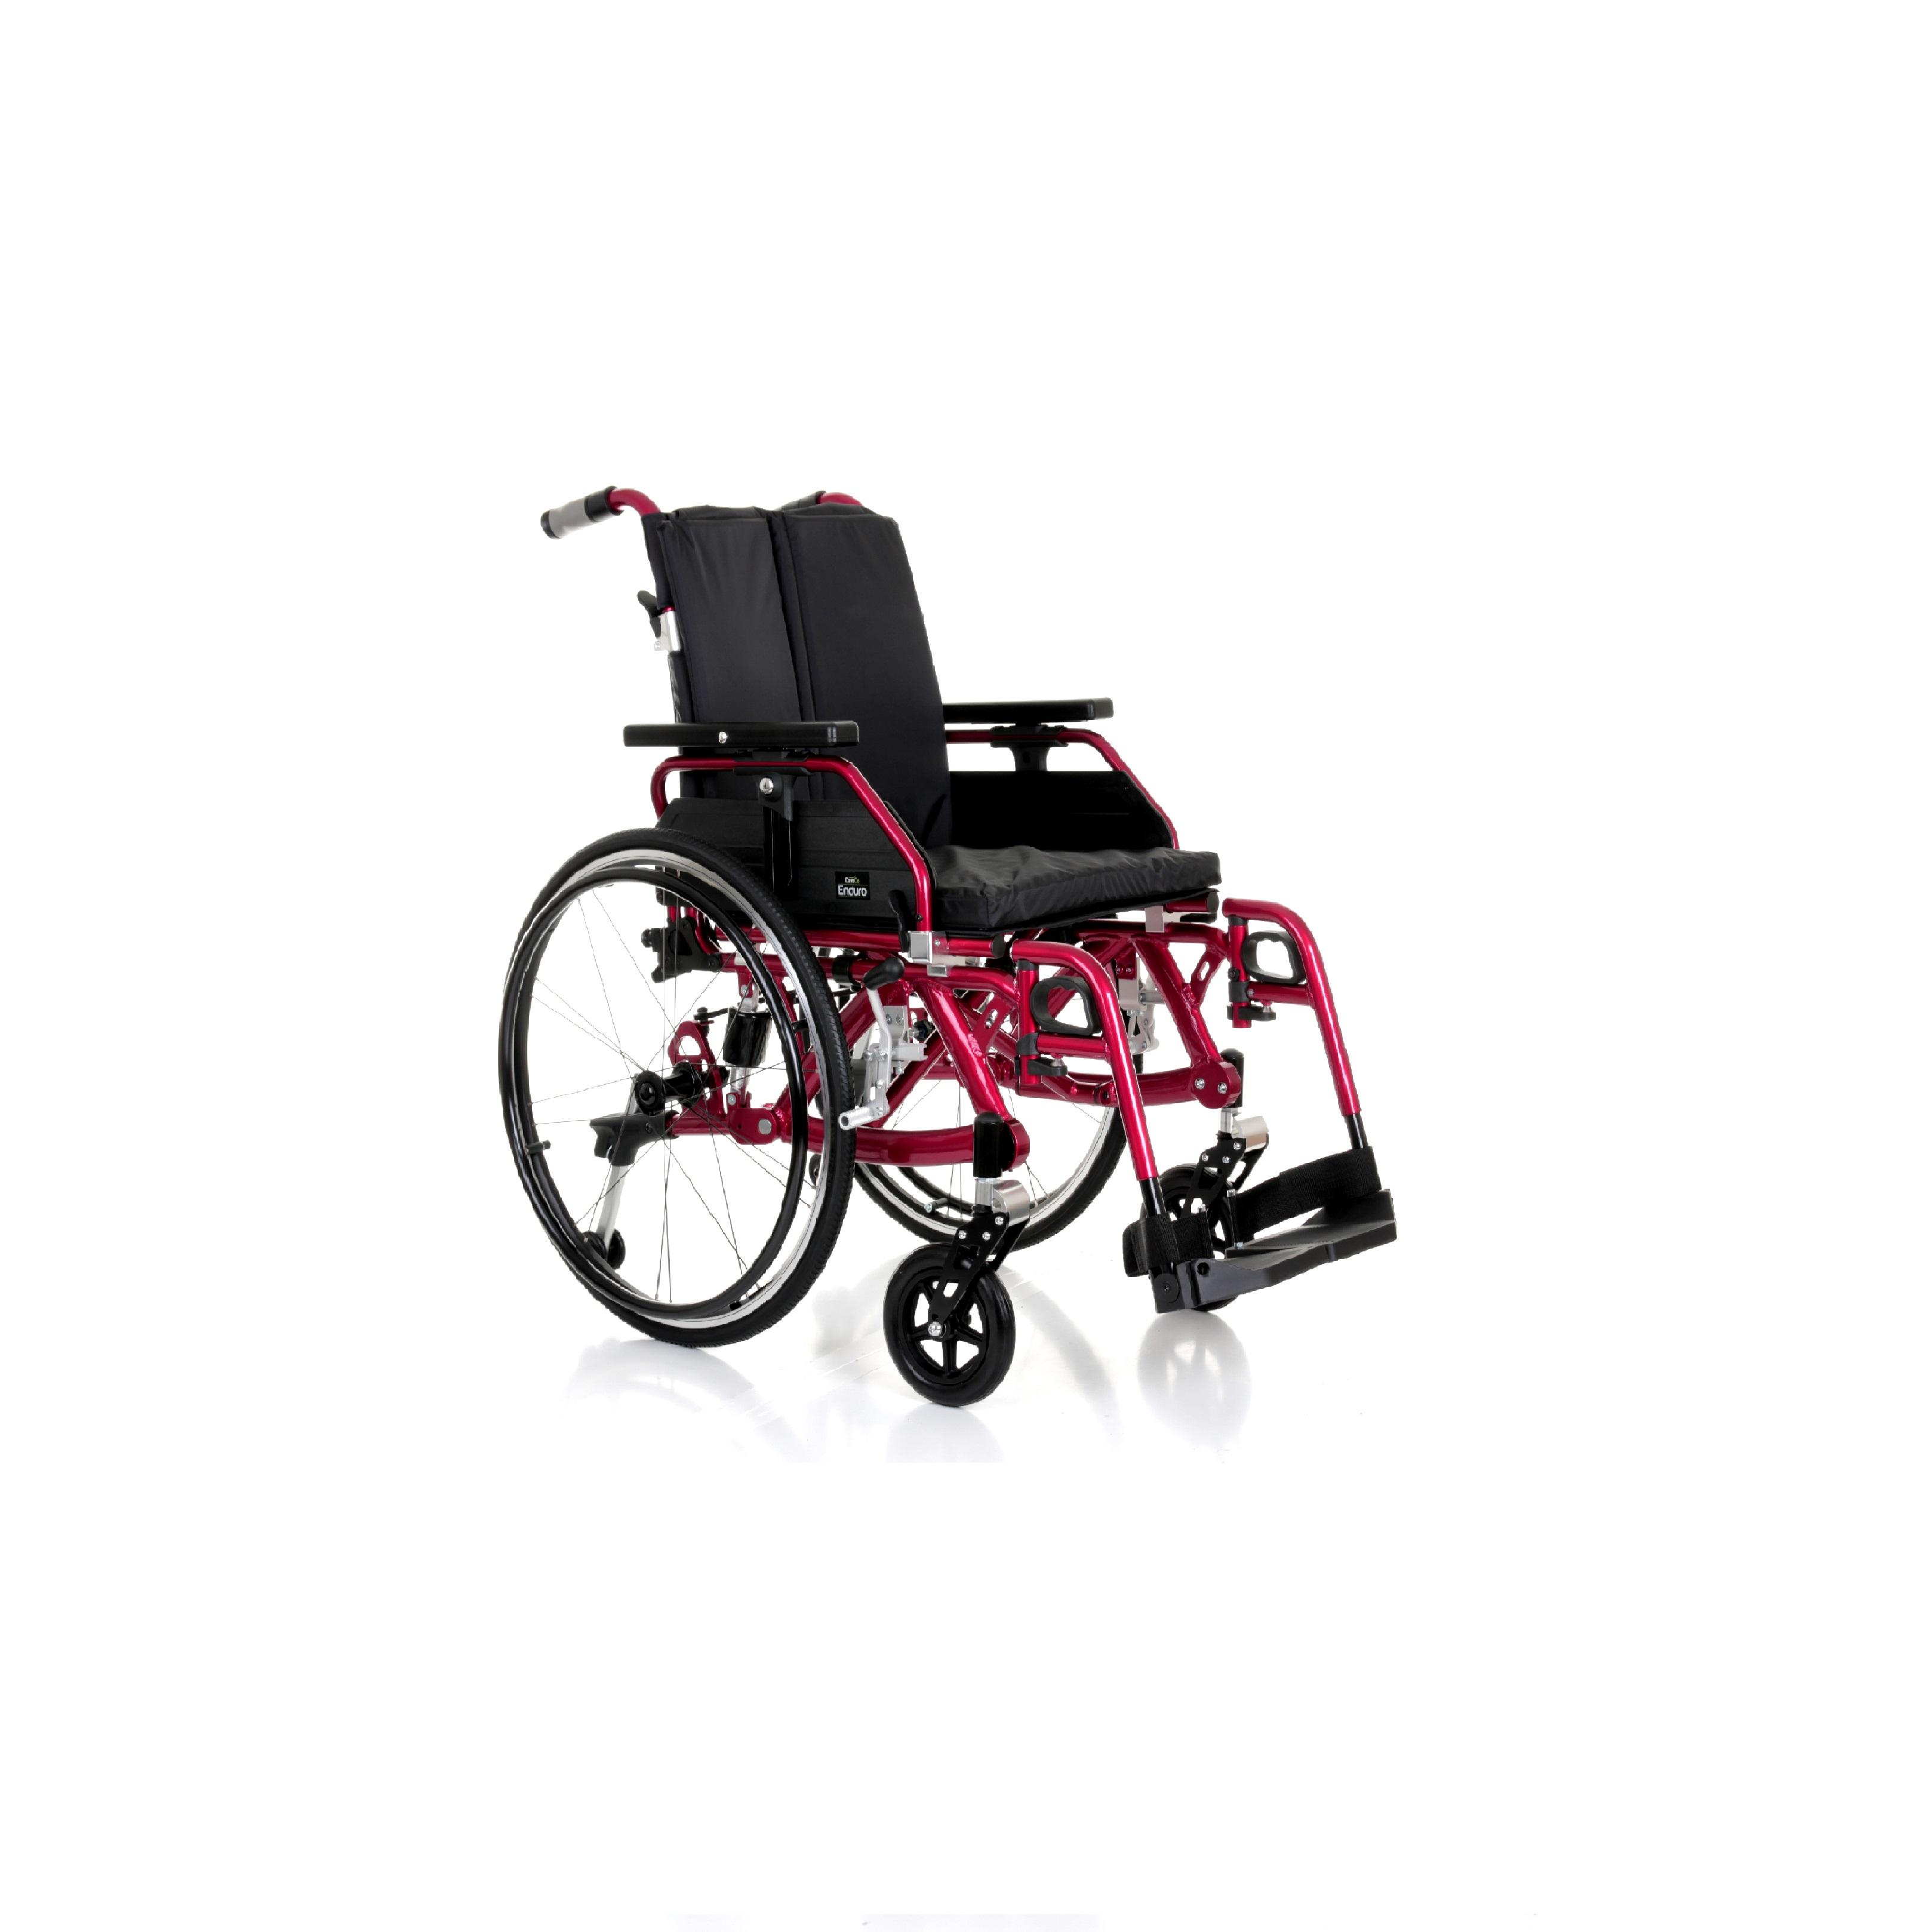 CareCo Enduro featured outdoor wheelchairs